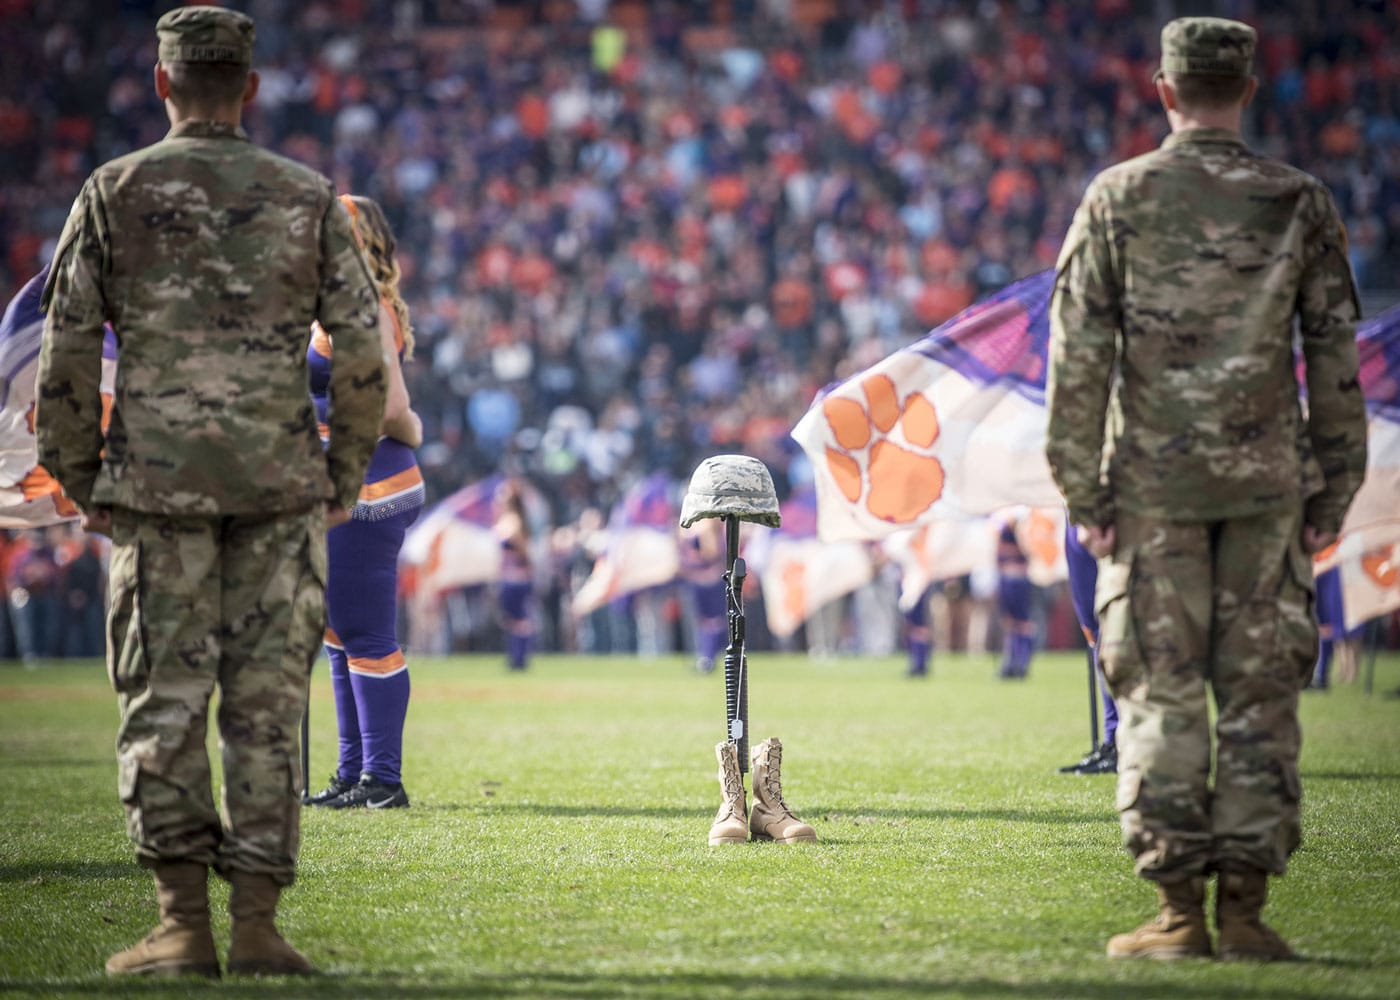 A Fallen Soldier Battle Cross sits mid-field as a crowd of more than 80,000 people observes a moment of silence to honor those who gave the ultimate sacrifice during the half-time ceremony of Clemson University's 2017 Military Appreciation Game in Memorial Stadium.